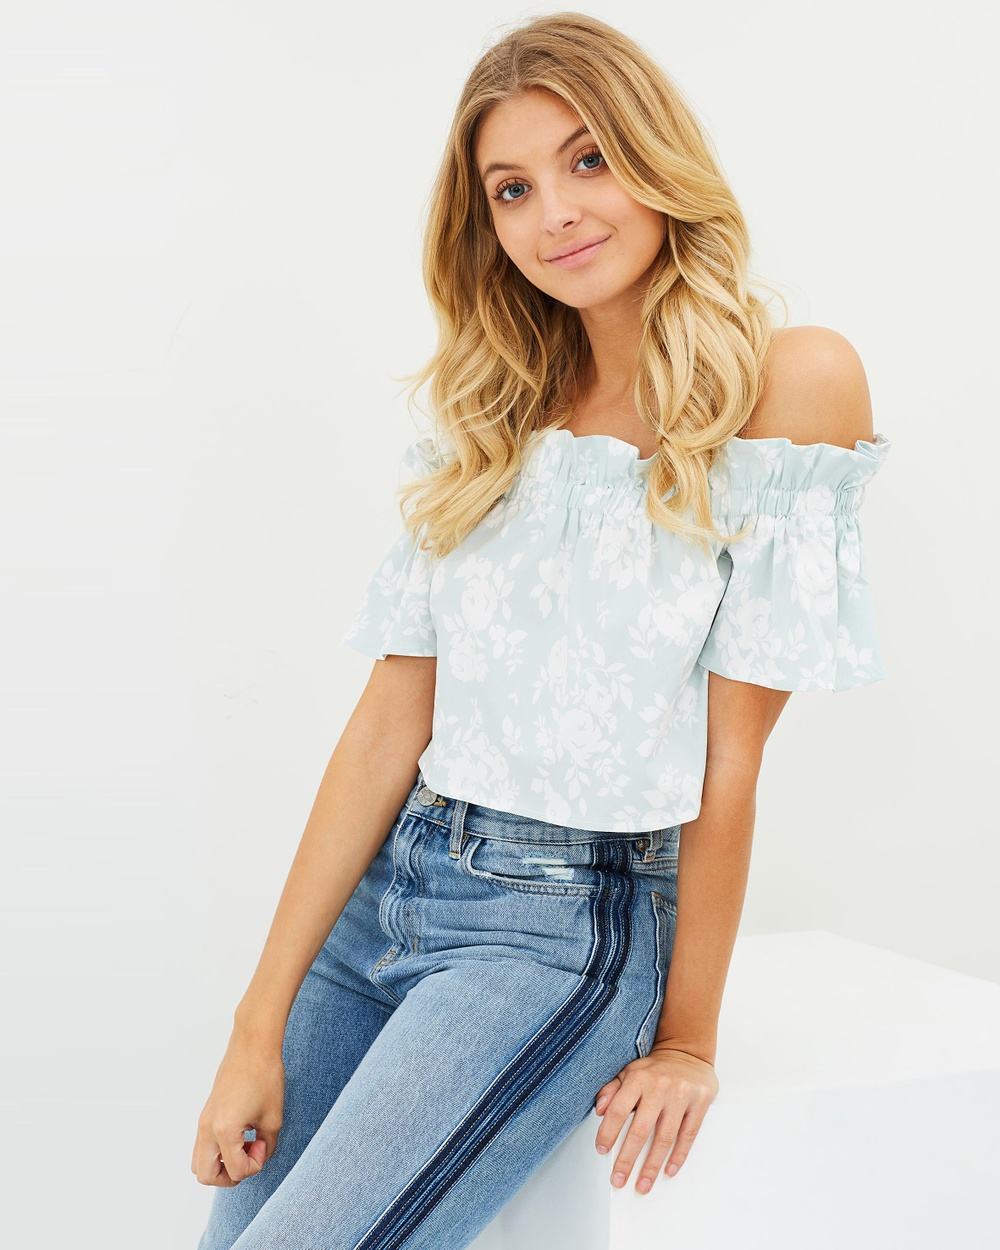 Atmos & Here ICONIC EXCLUSIVE Rania Off Shoulder Printed Top Cropped tops Mint White Stencil Floral ICONIC EXCLUSIVE Rania Off-Shoulder Printed Top